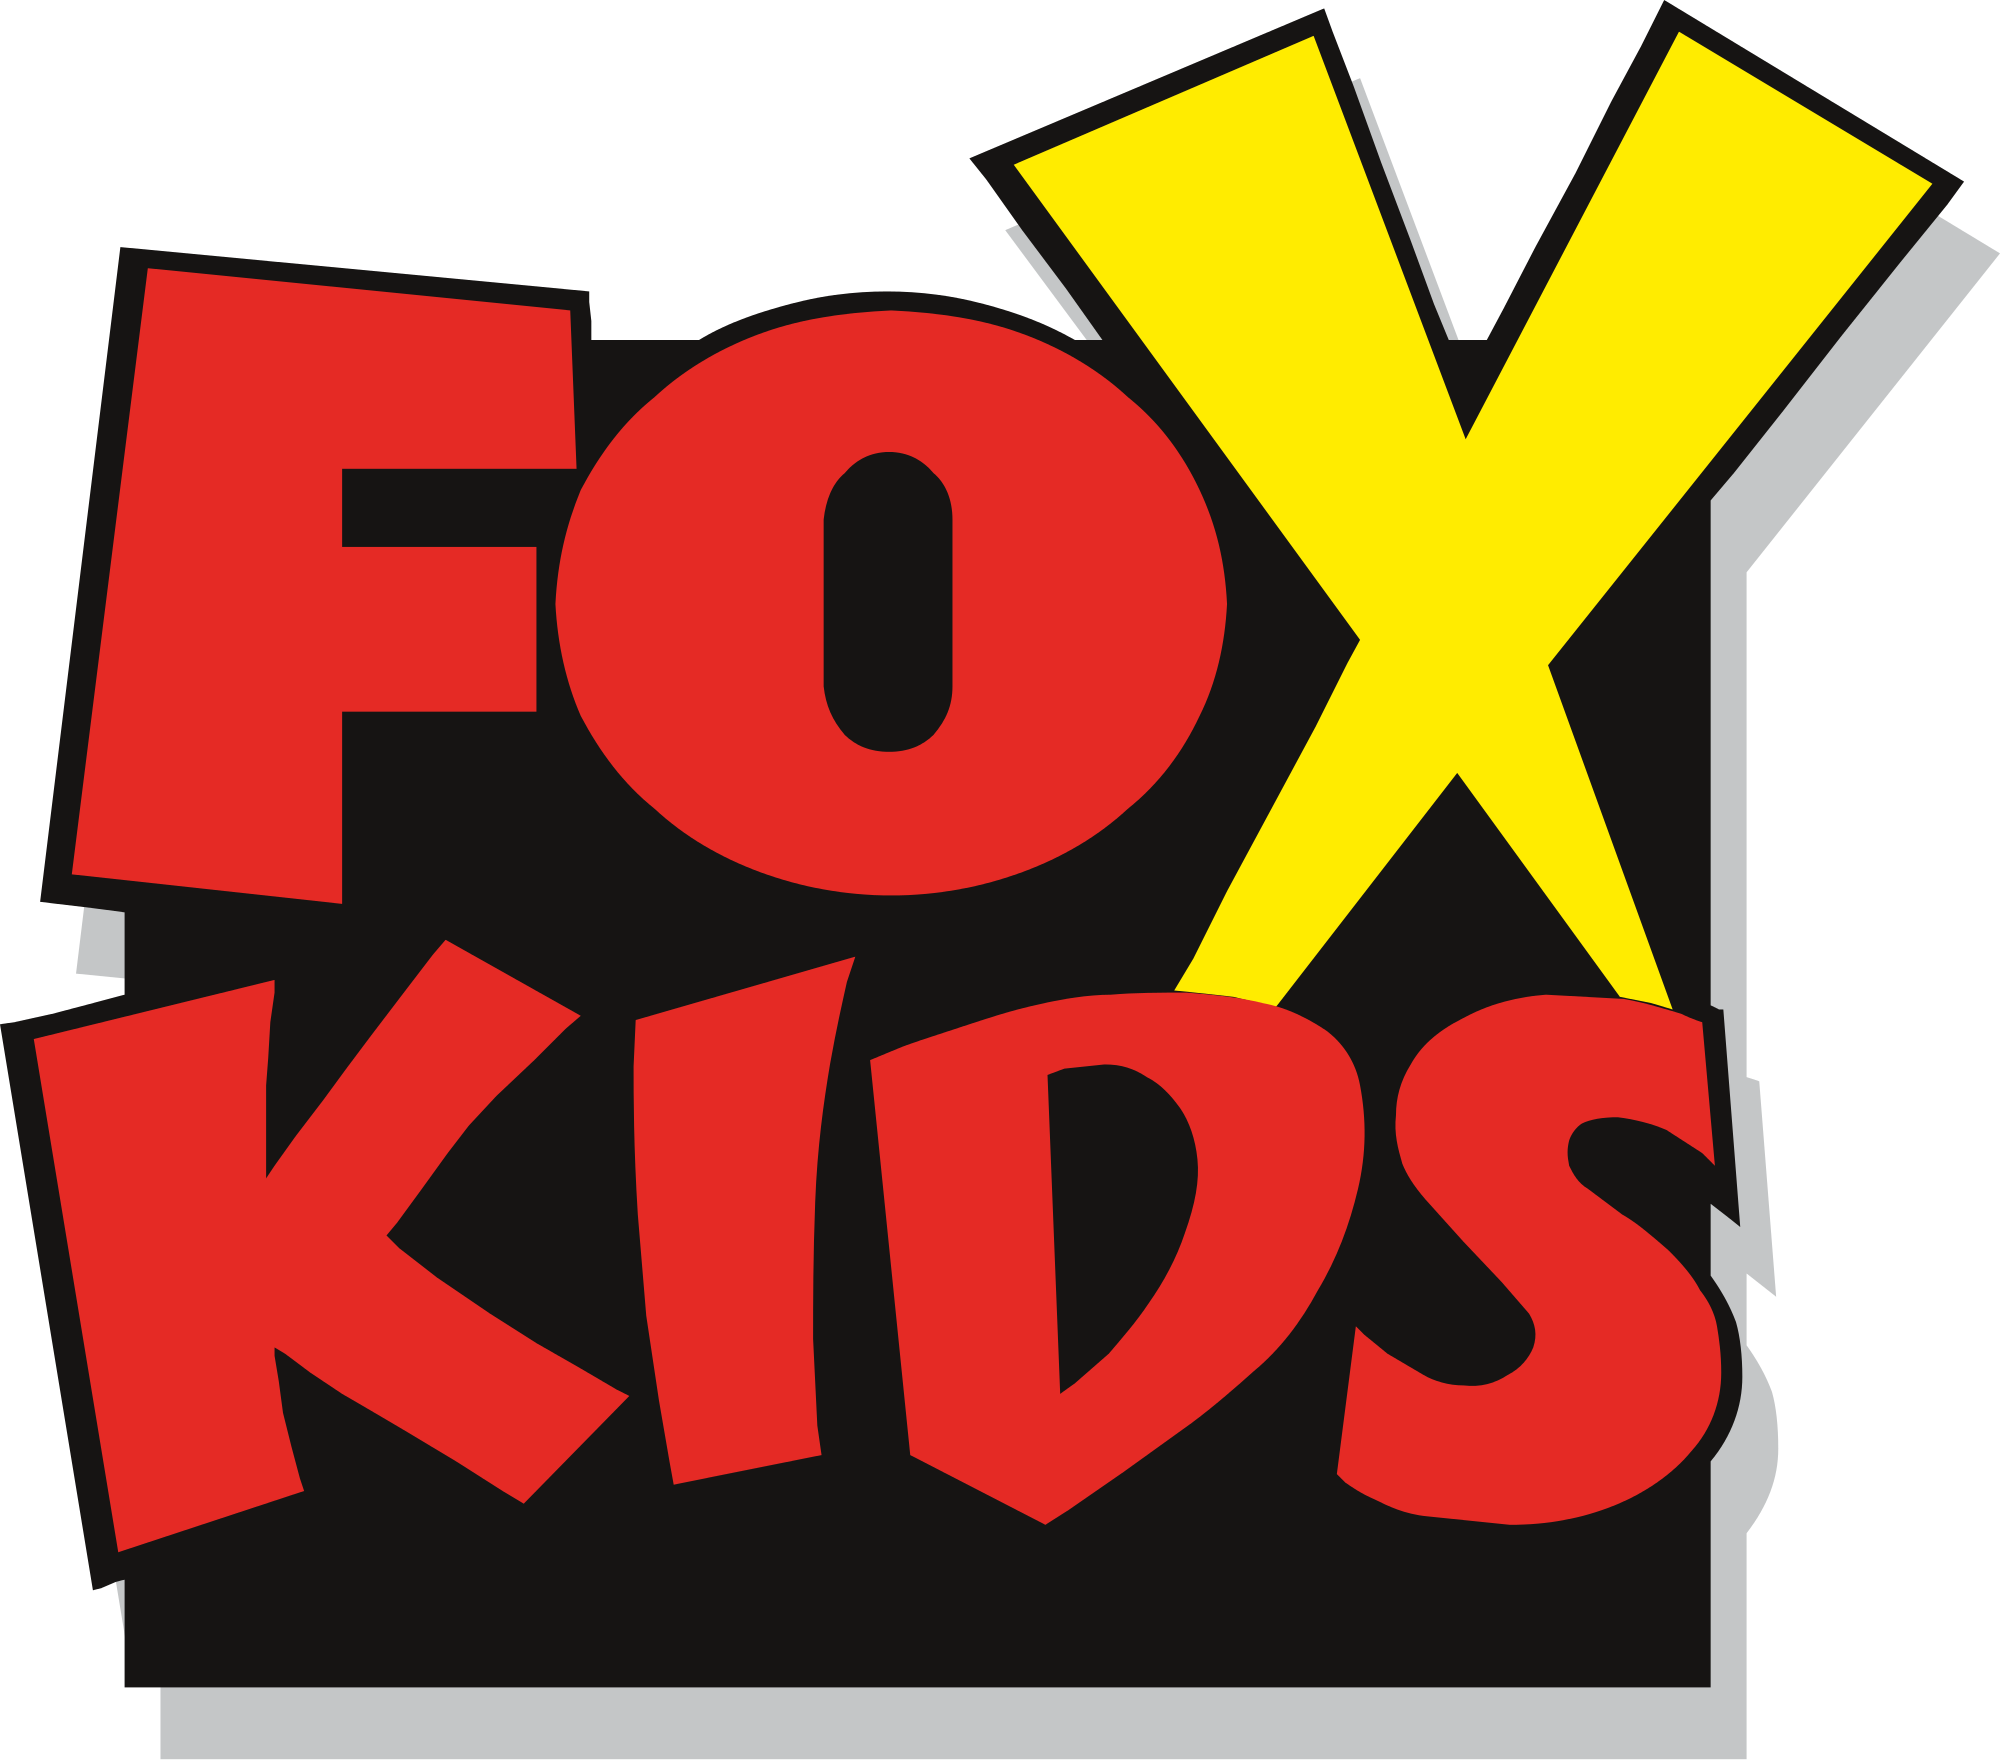 Fox kids wikipedia logosvg. Clipart tv world television day